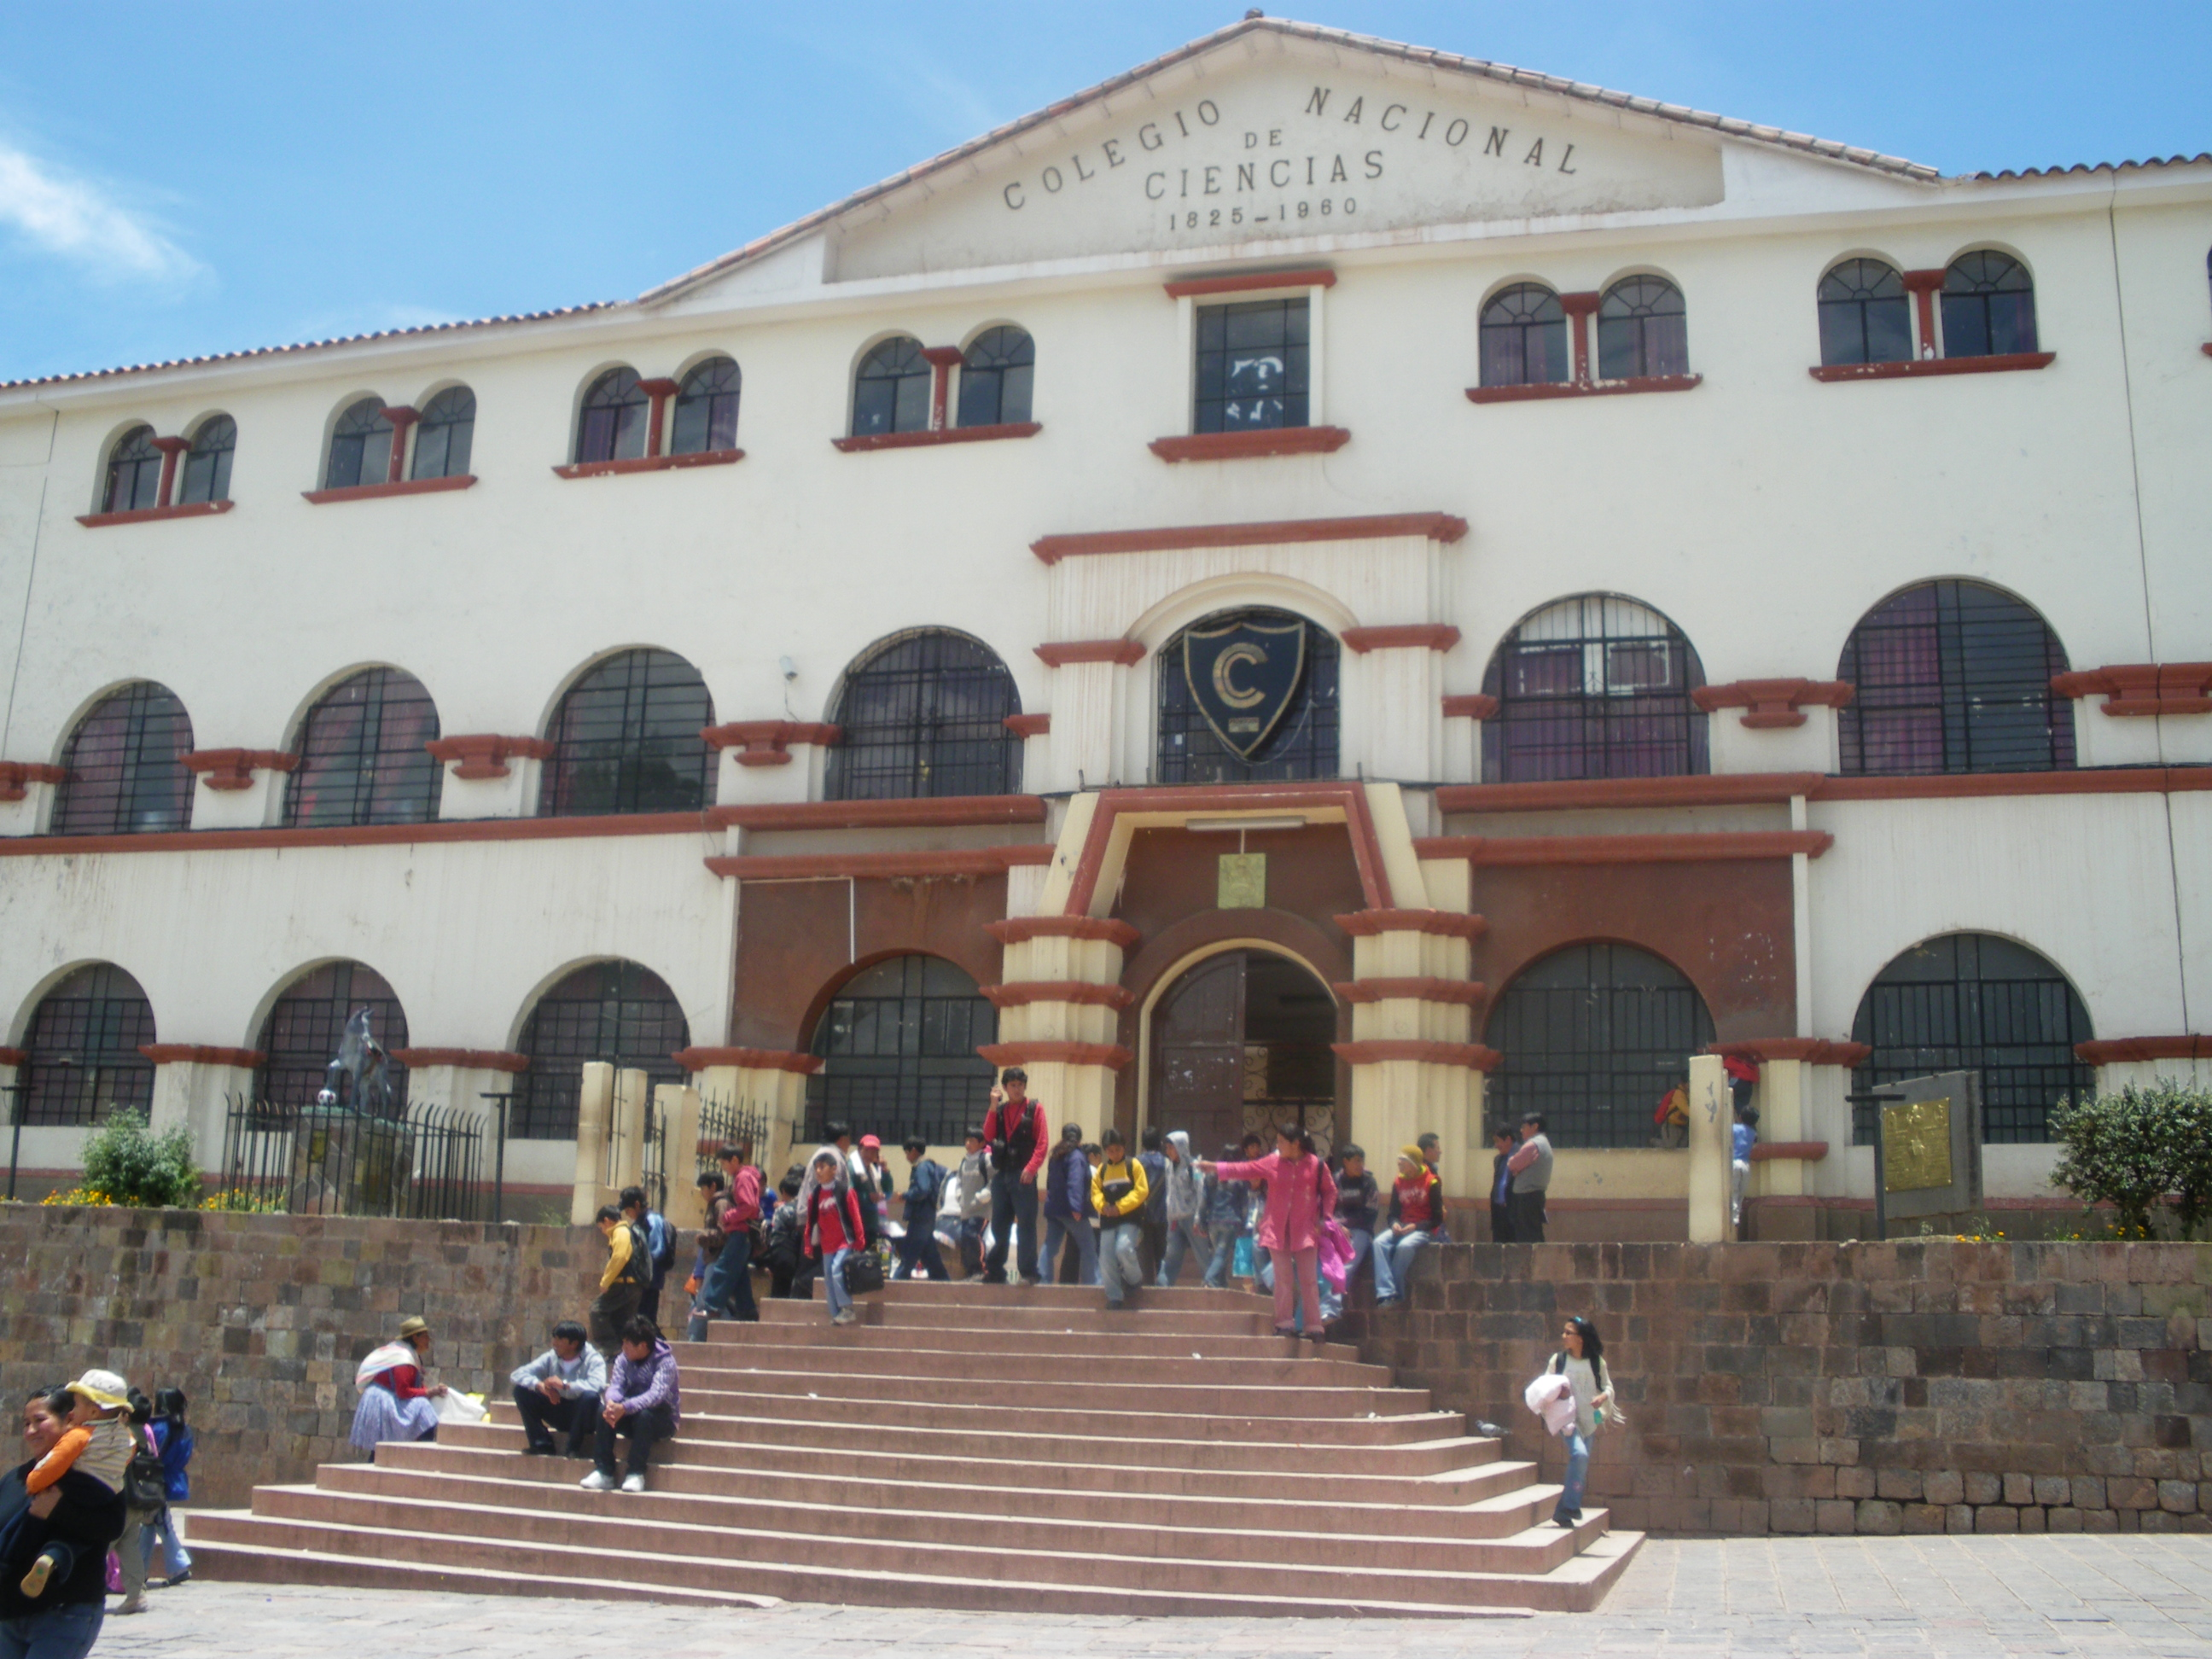 A college of science.